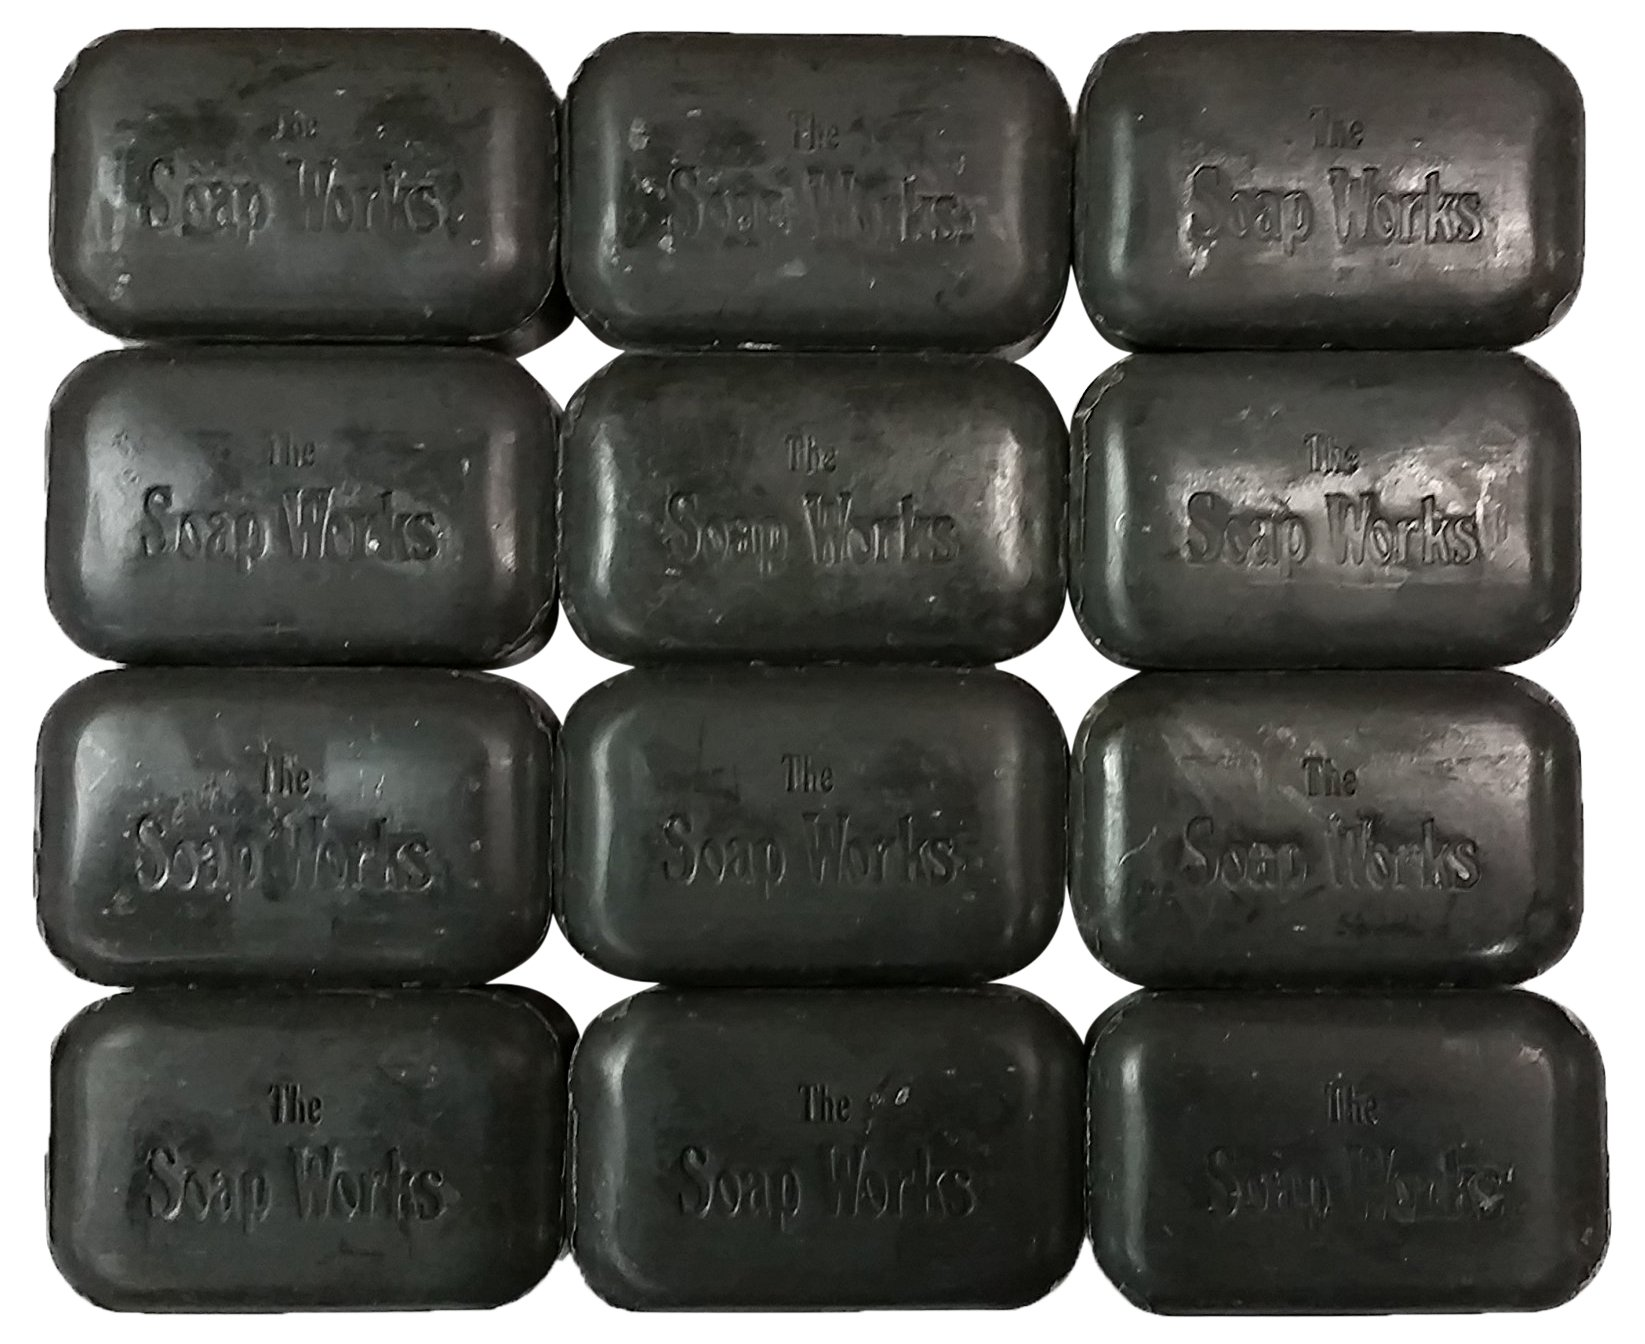 Soap Works Coal Tar Bar Soap - 12 pack by SOAP WORKS